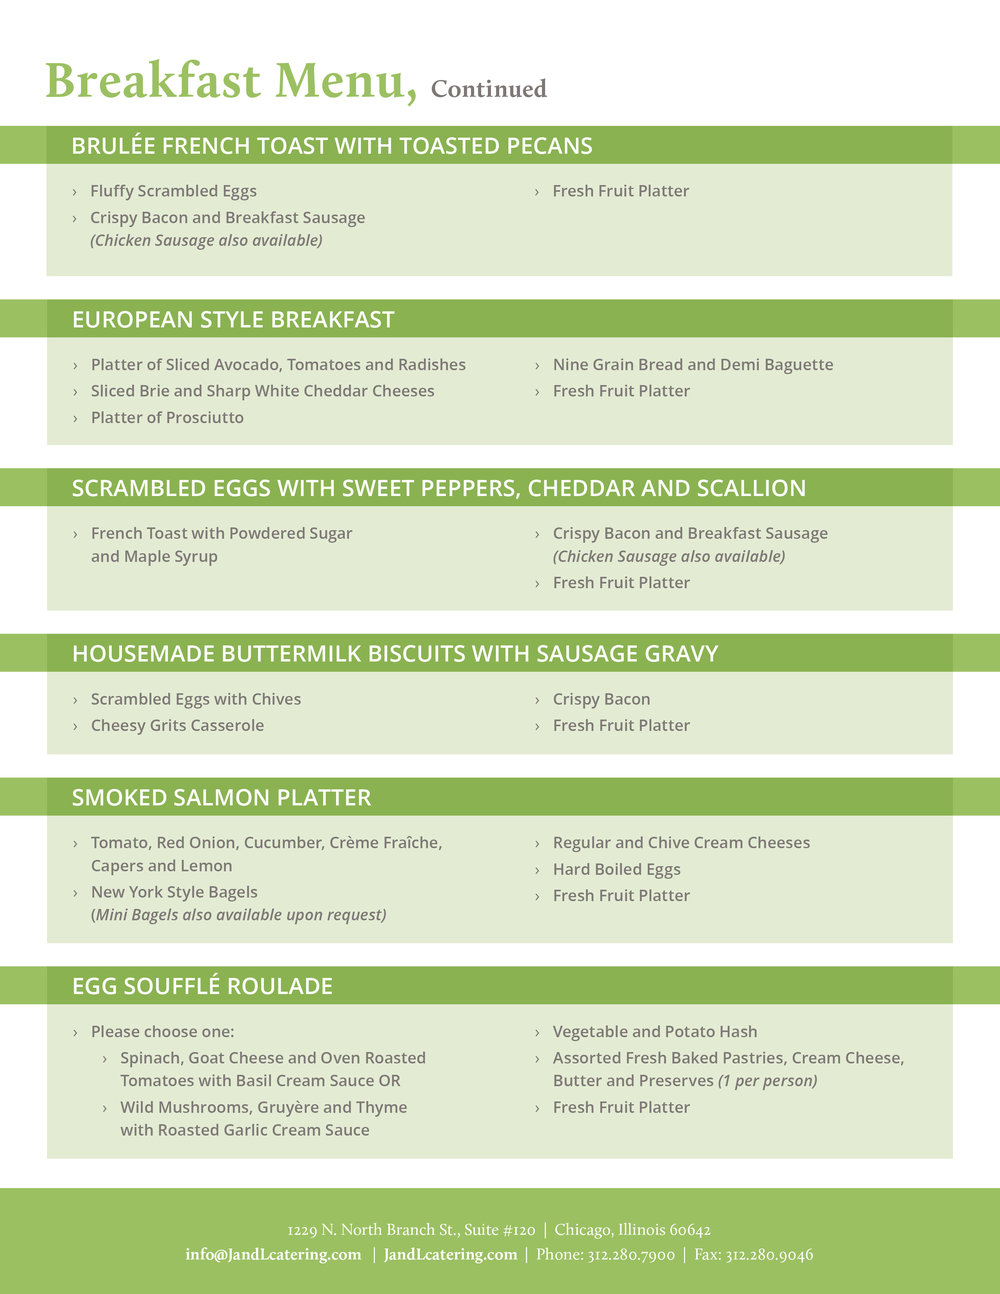 J&L_CorporateBreakfastMenu-3.jpg